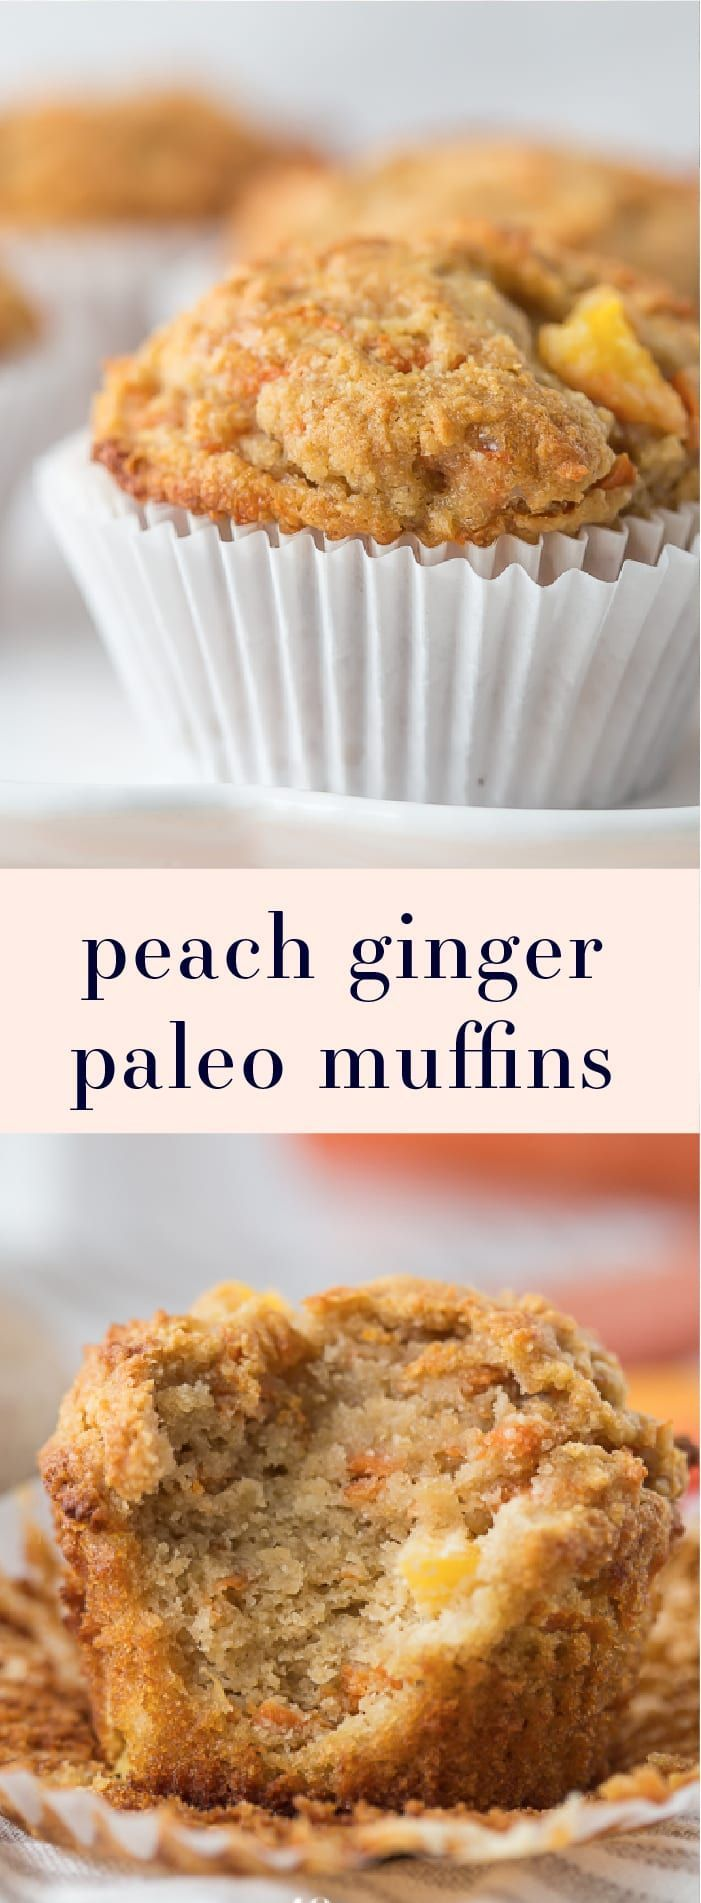 These peach ginger paleo muffins are moist and tender, full of fruity, fresh peaches and earthy ginger. The best thing about these paleo muffins? They don't taste like they're paleo! Grain-free, glute (Favorite Desserts Dairy Free)